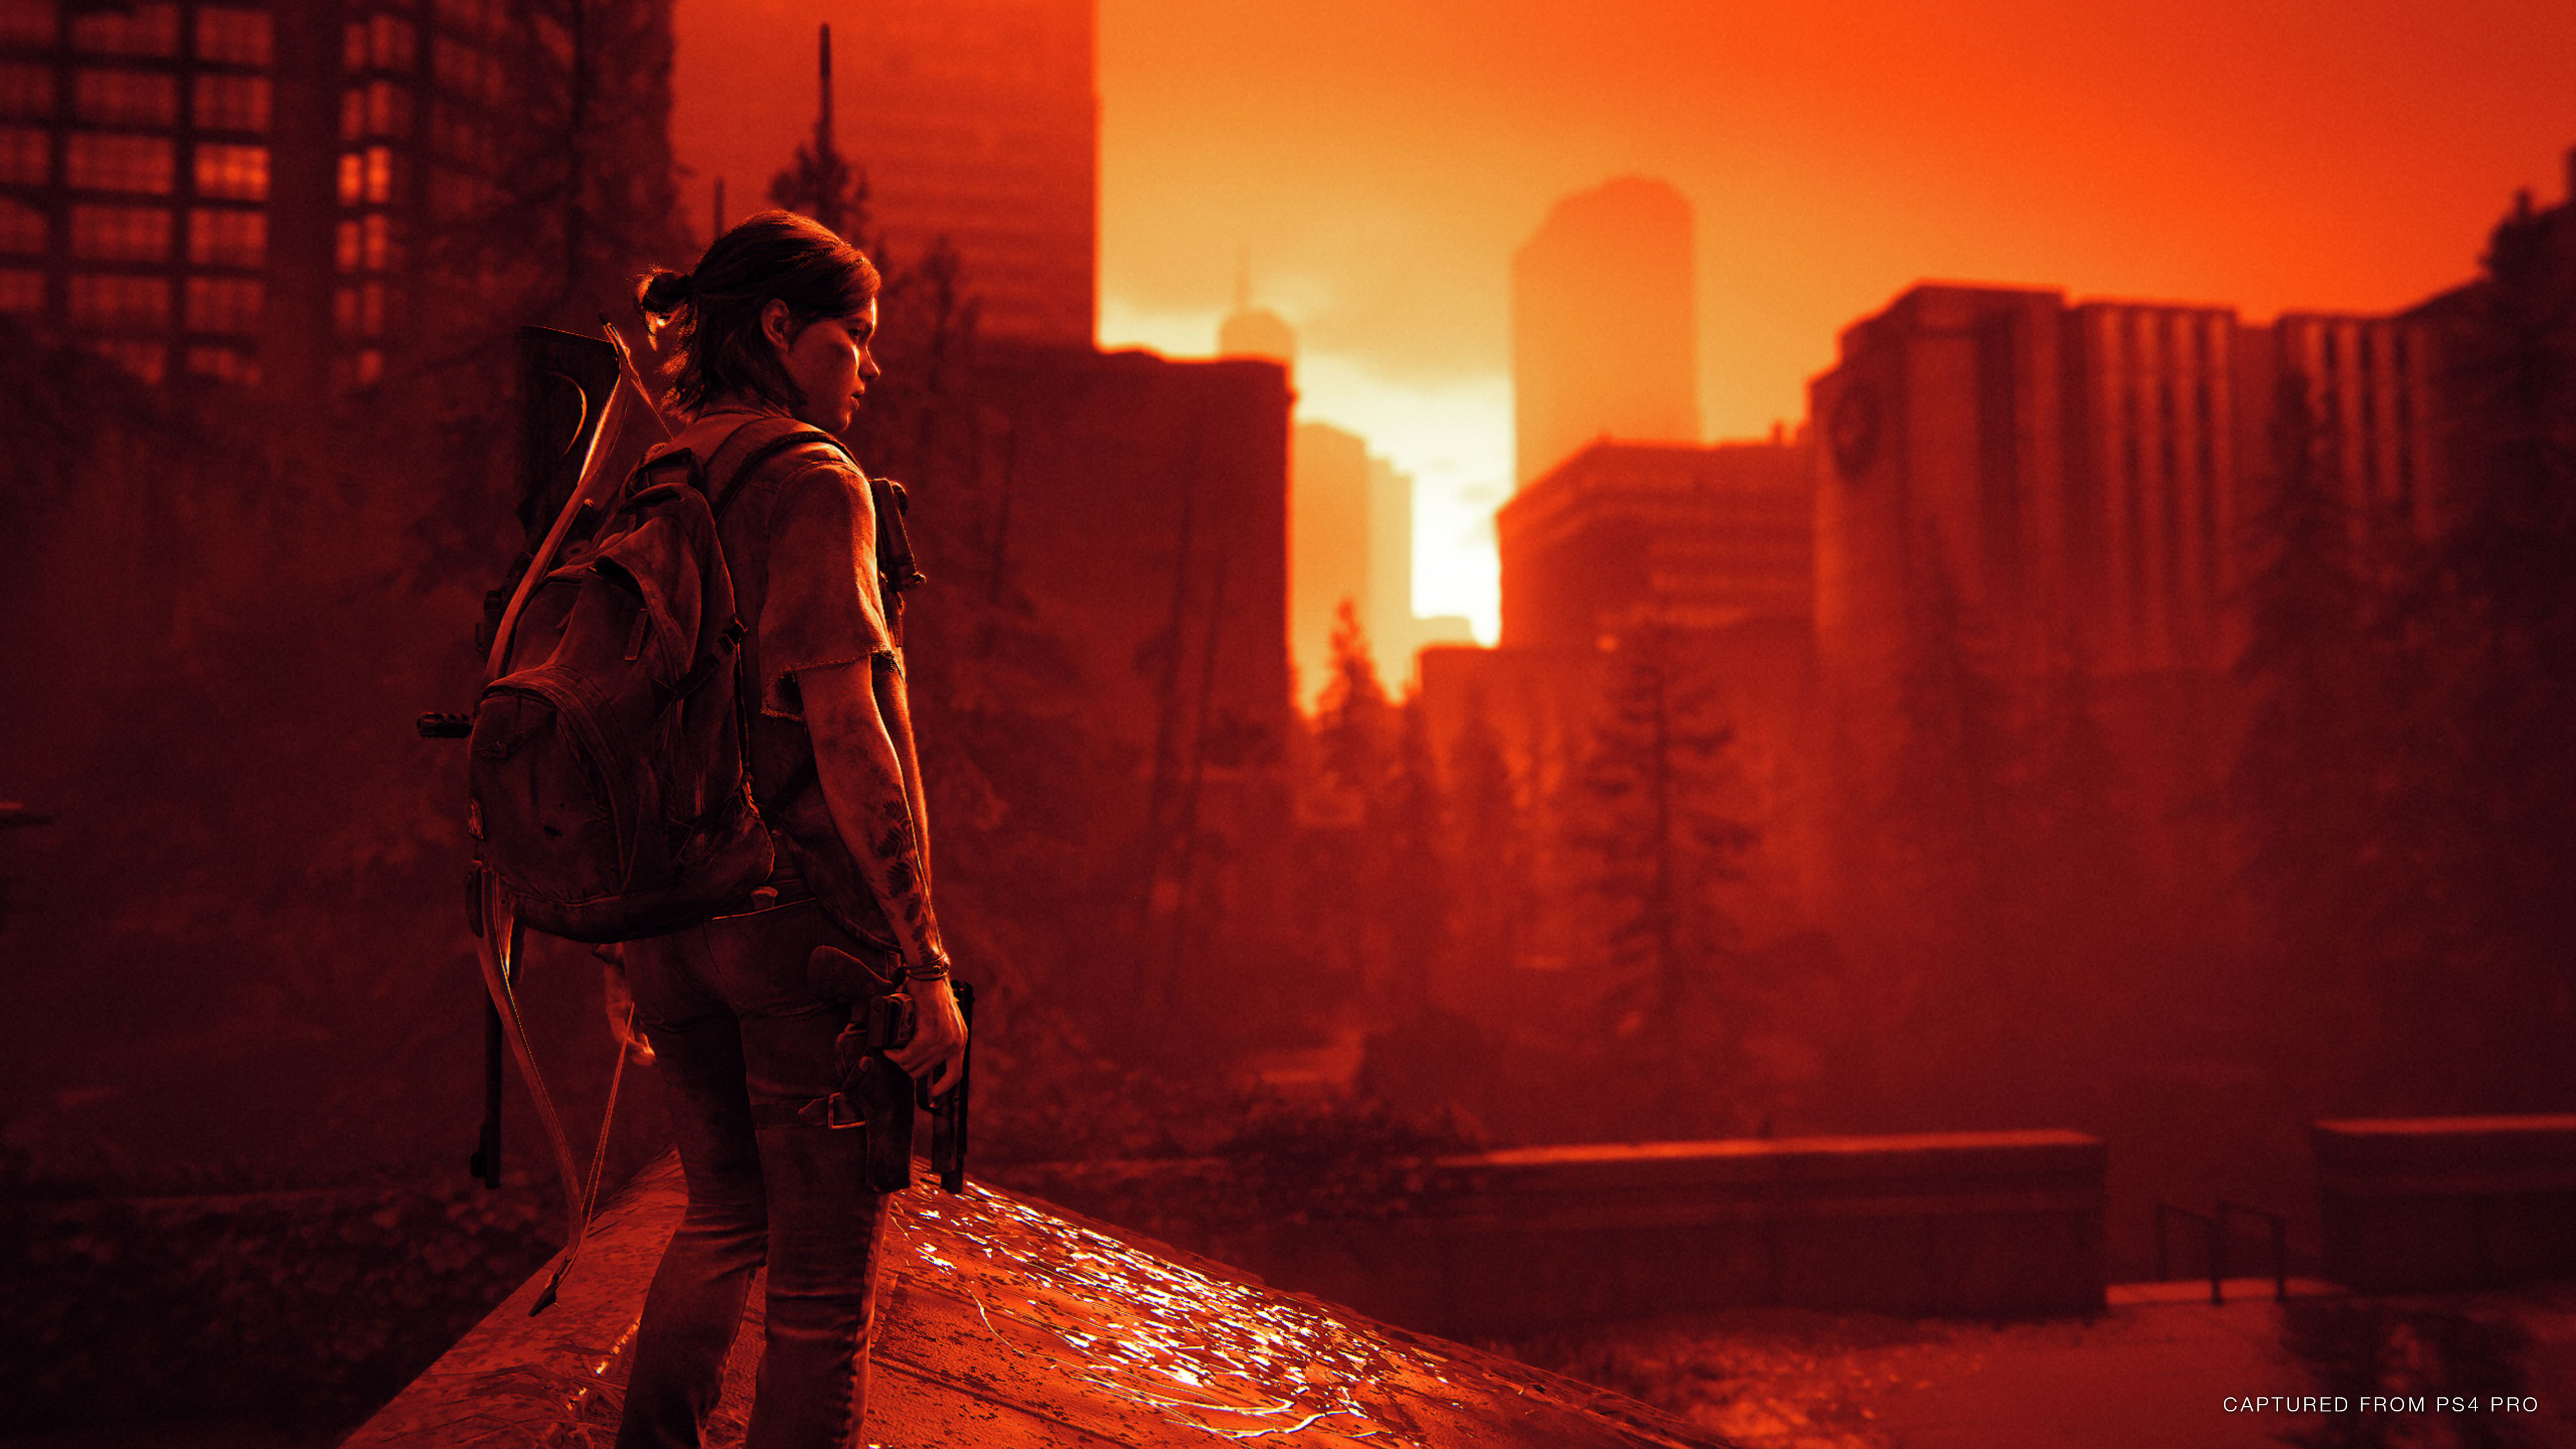 Ellie stands on a rooftop looking out to the hospital with the Inferno render mode over the image.